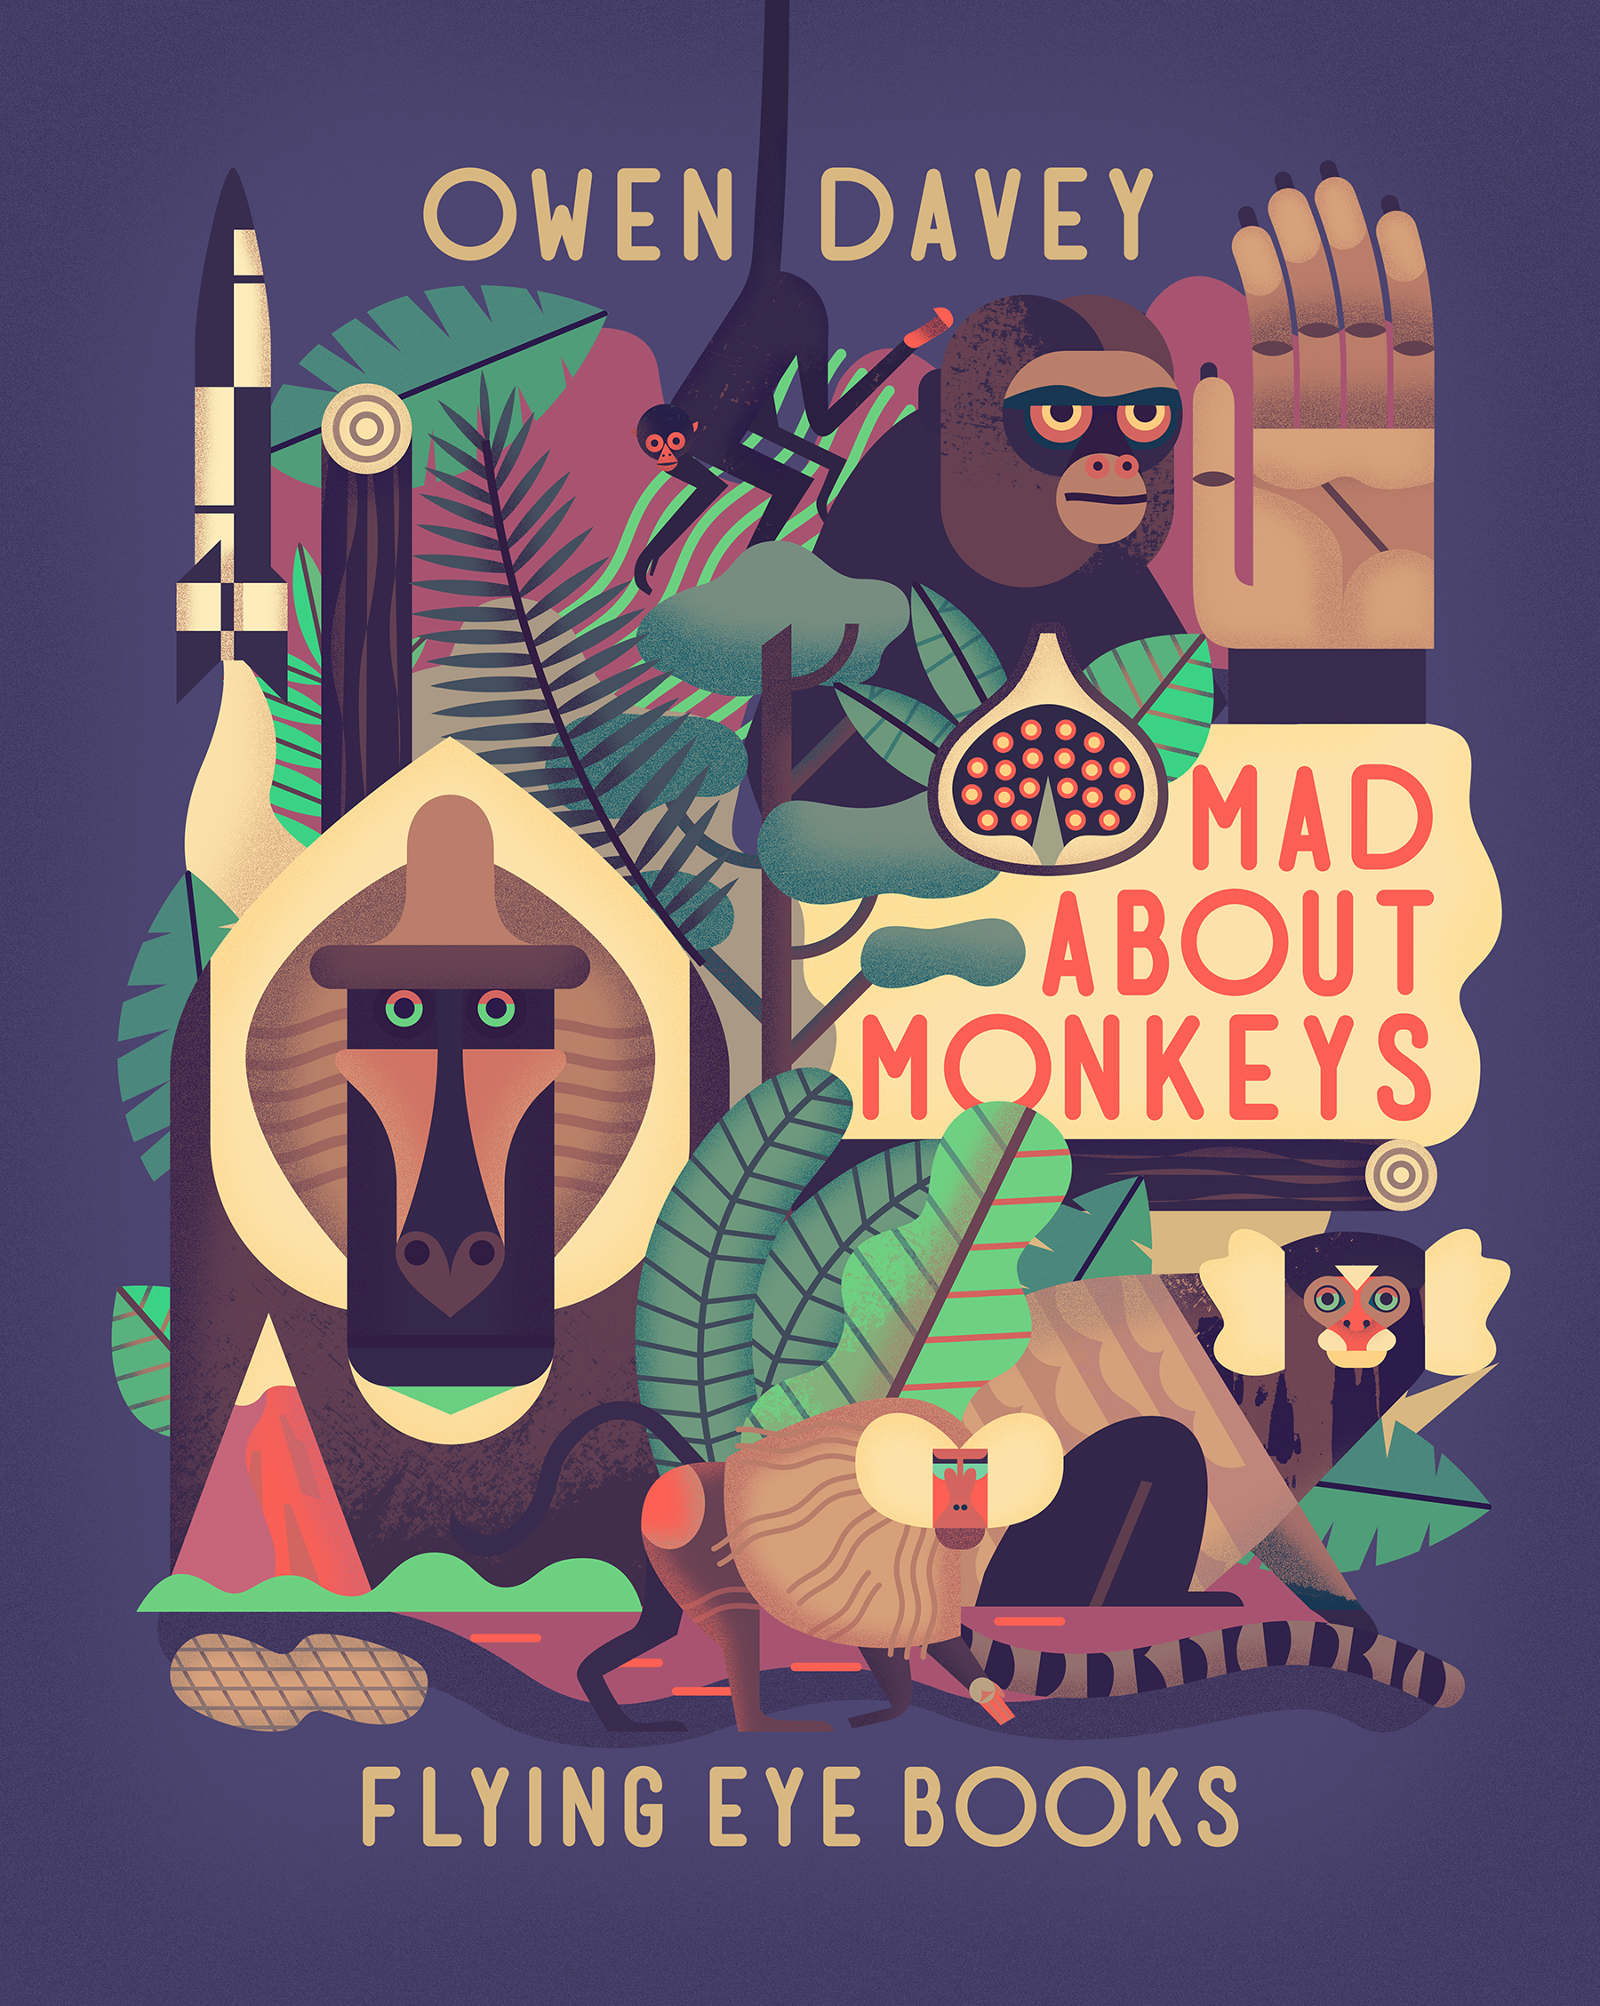 Mad about monkeys - book